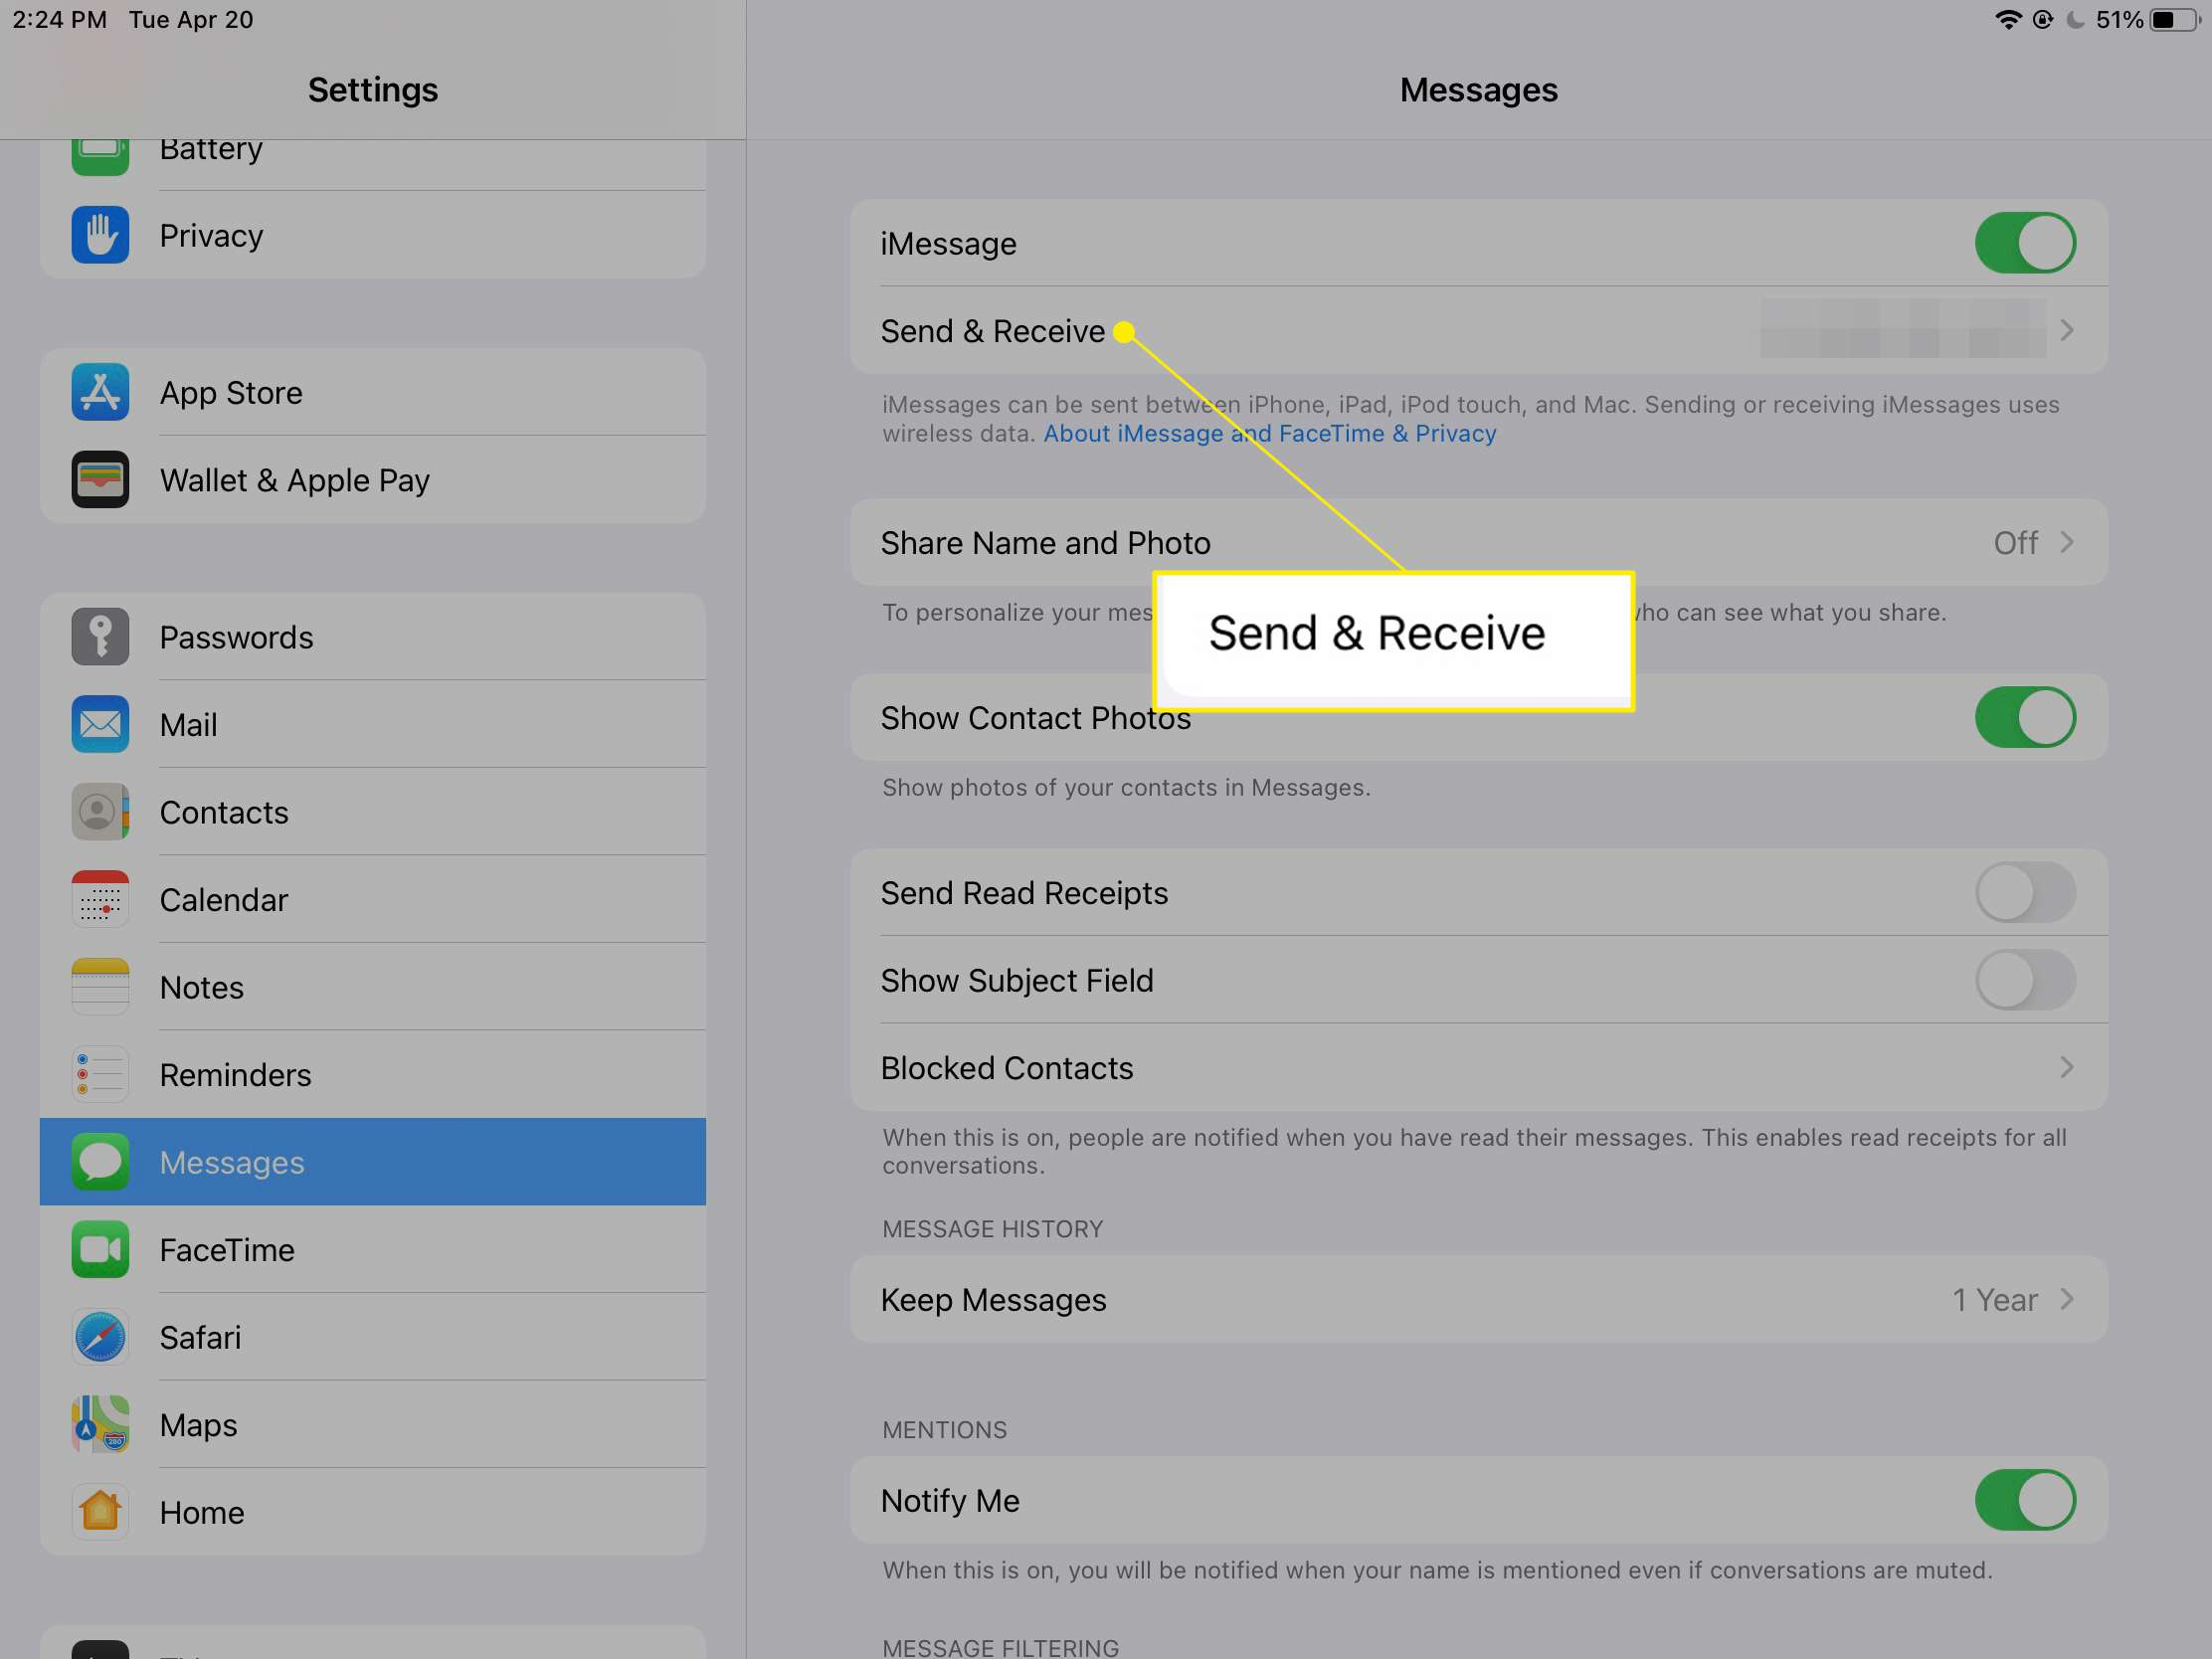 iPad Messages settings with